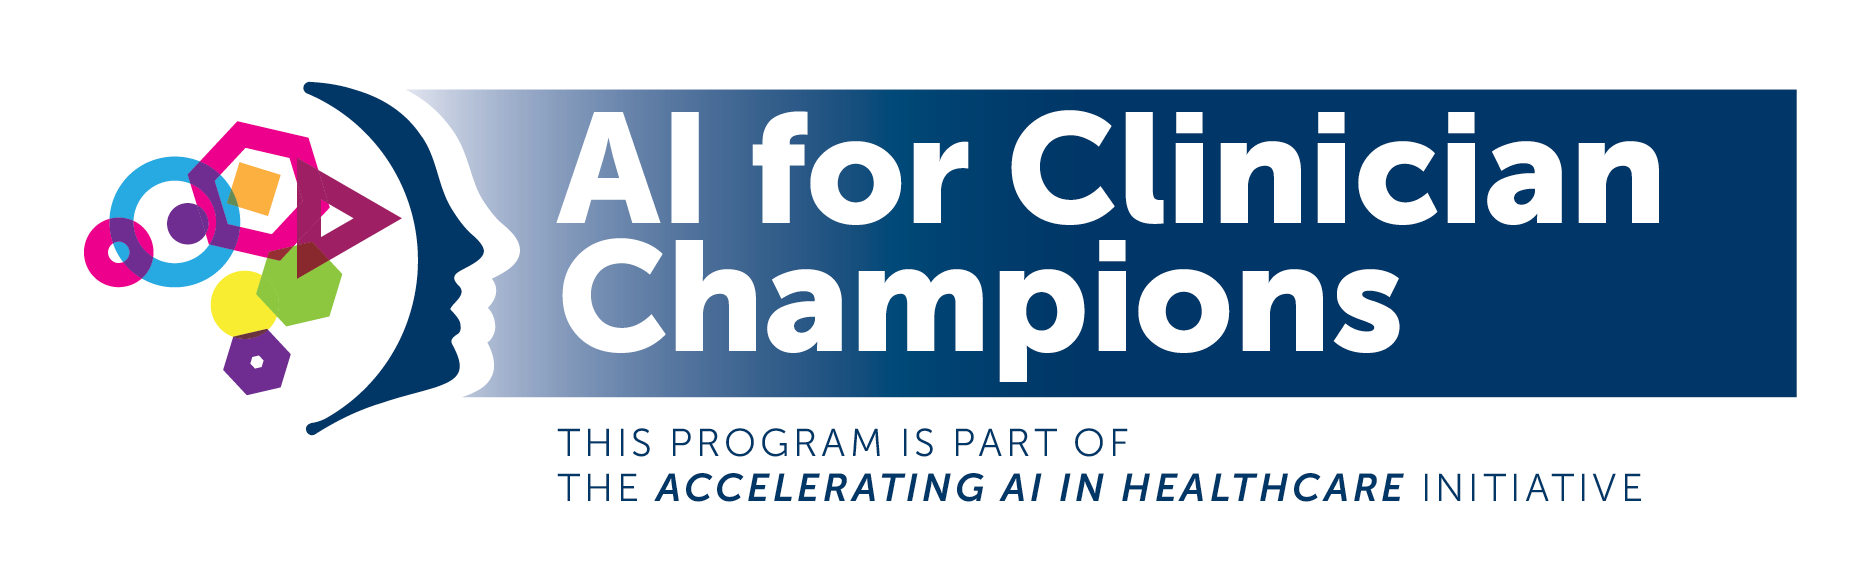 A logo of a right-facing head silhouette filled with colourful shapes. AI for Clinician Champions. This program is part of the Accelerating AI in Healthcare initiative.